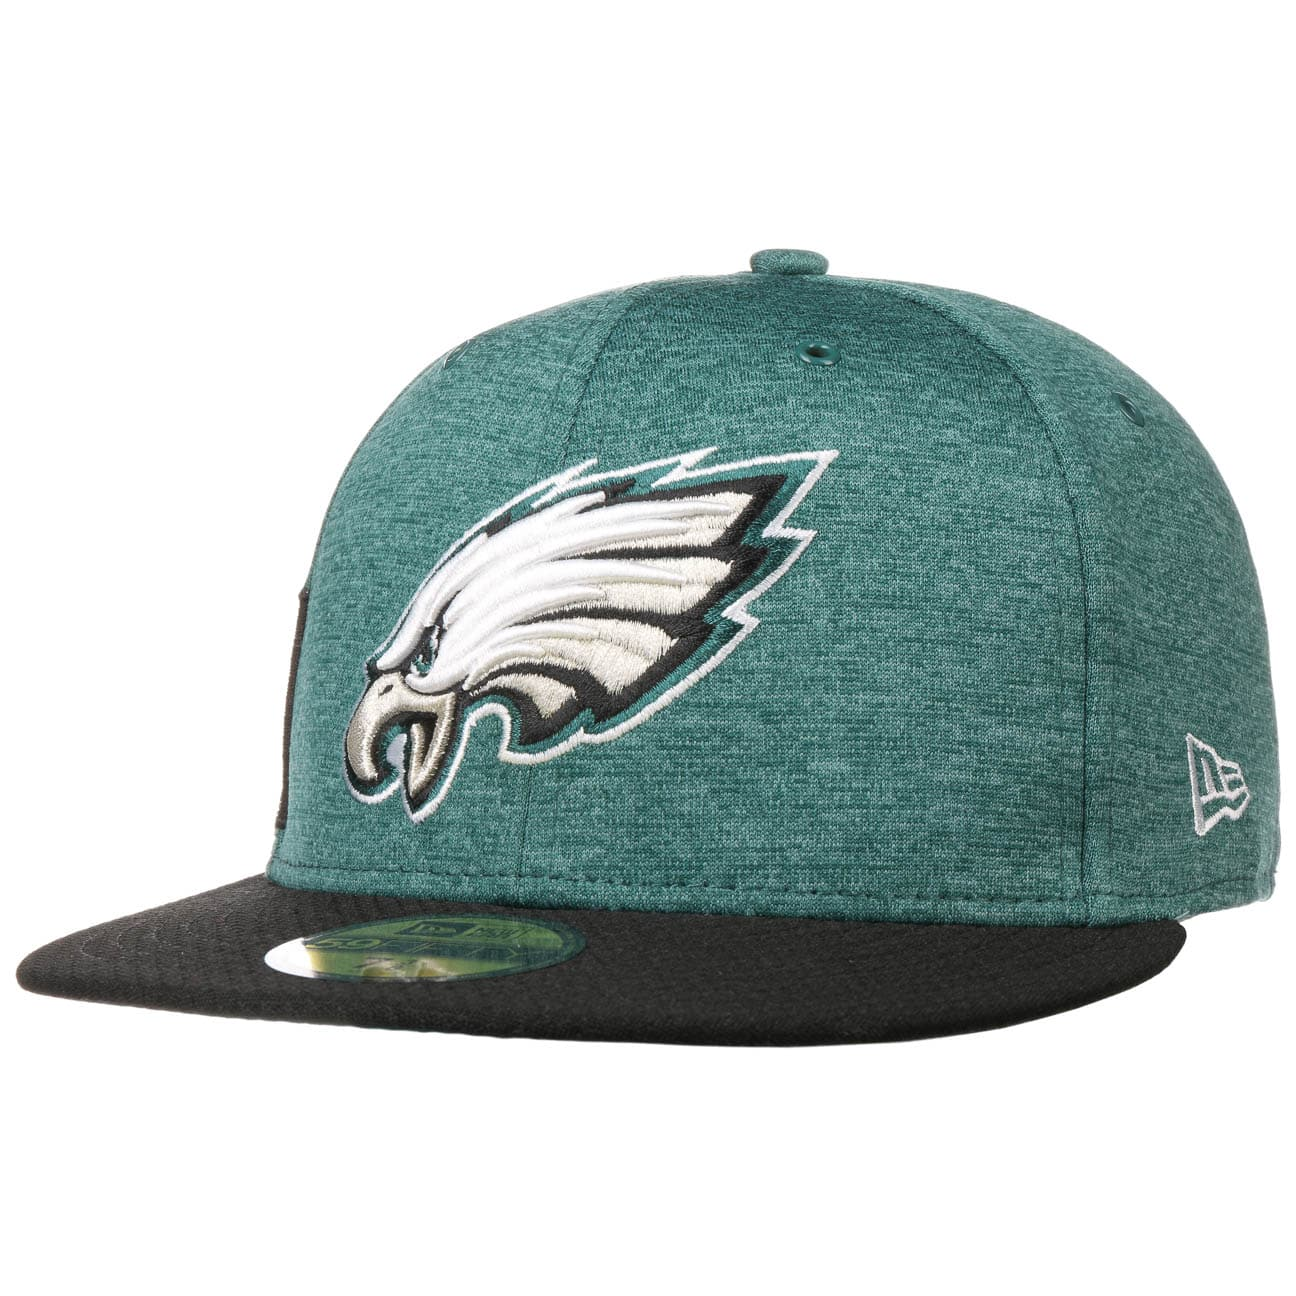 59fifty-on-field-18-eagles-cap-by-new-era-baseballcap, 29.95 EUR @ hutshopping-de